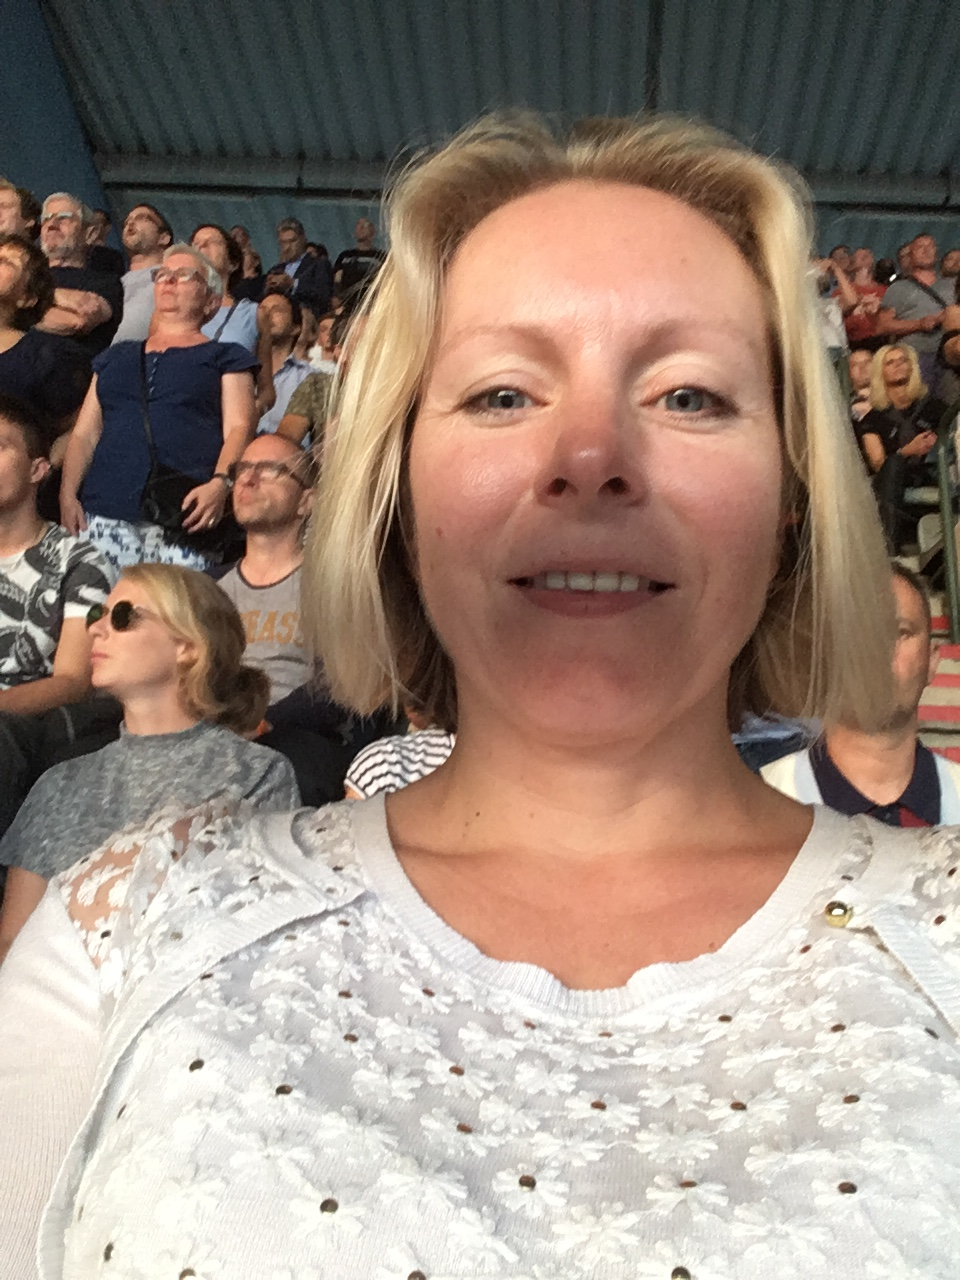 Fiona at U2 concert in Heysel, Brussels